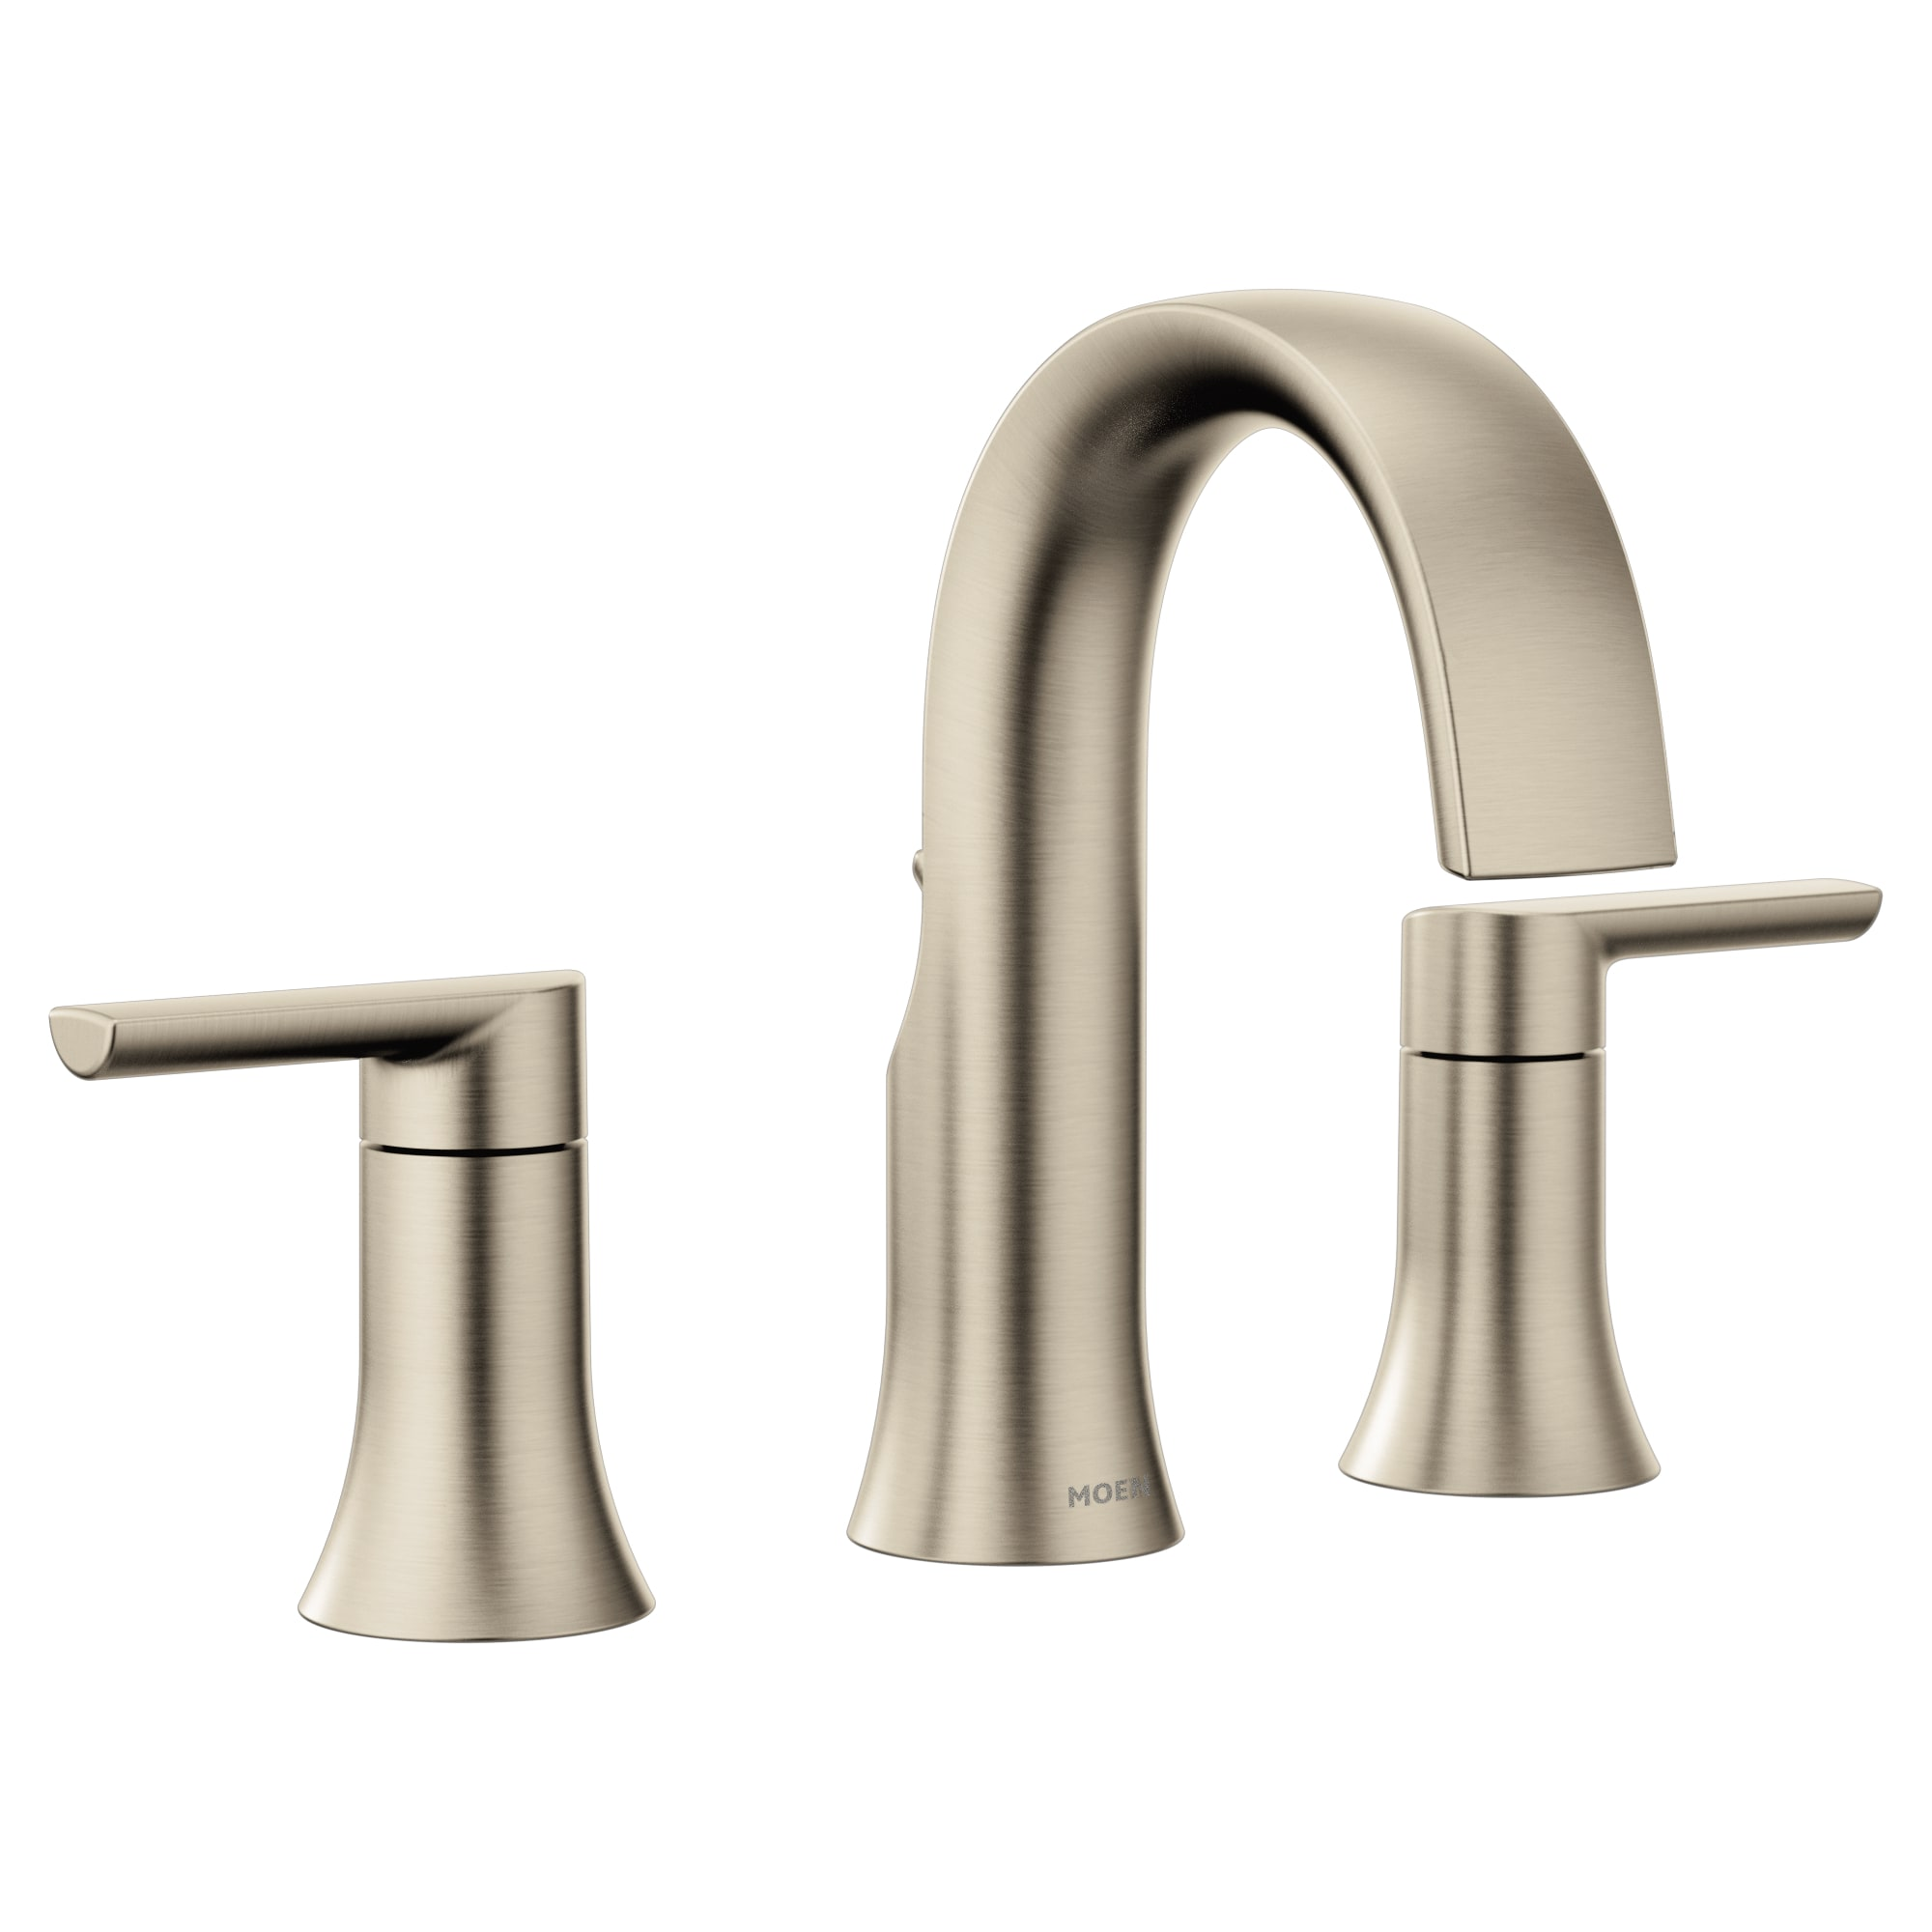 Moen Ts6925 Chrome Doux 1 2 Gpm Widespread Bathroom Faucet Less Valve And Drain Assembly Faucetdirect Com